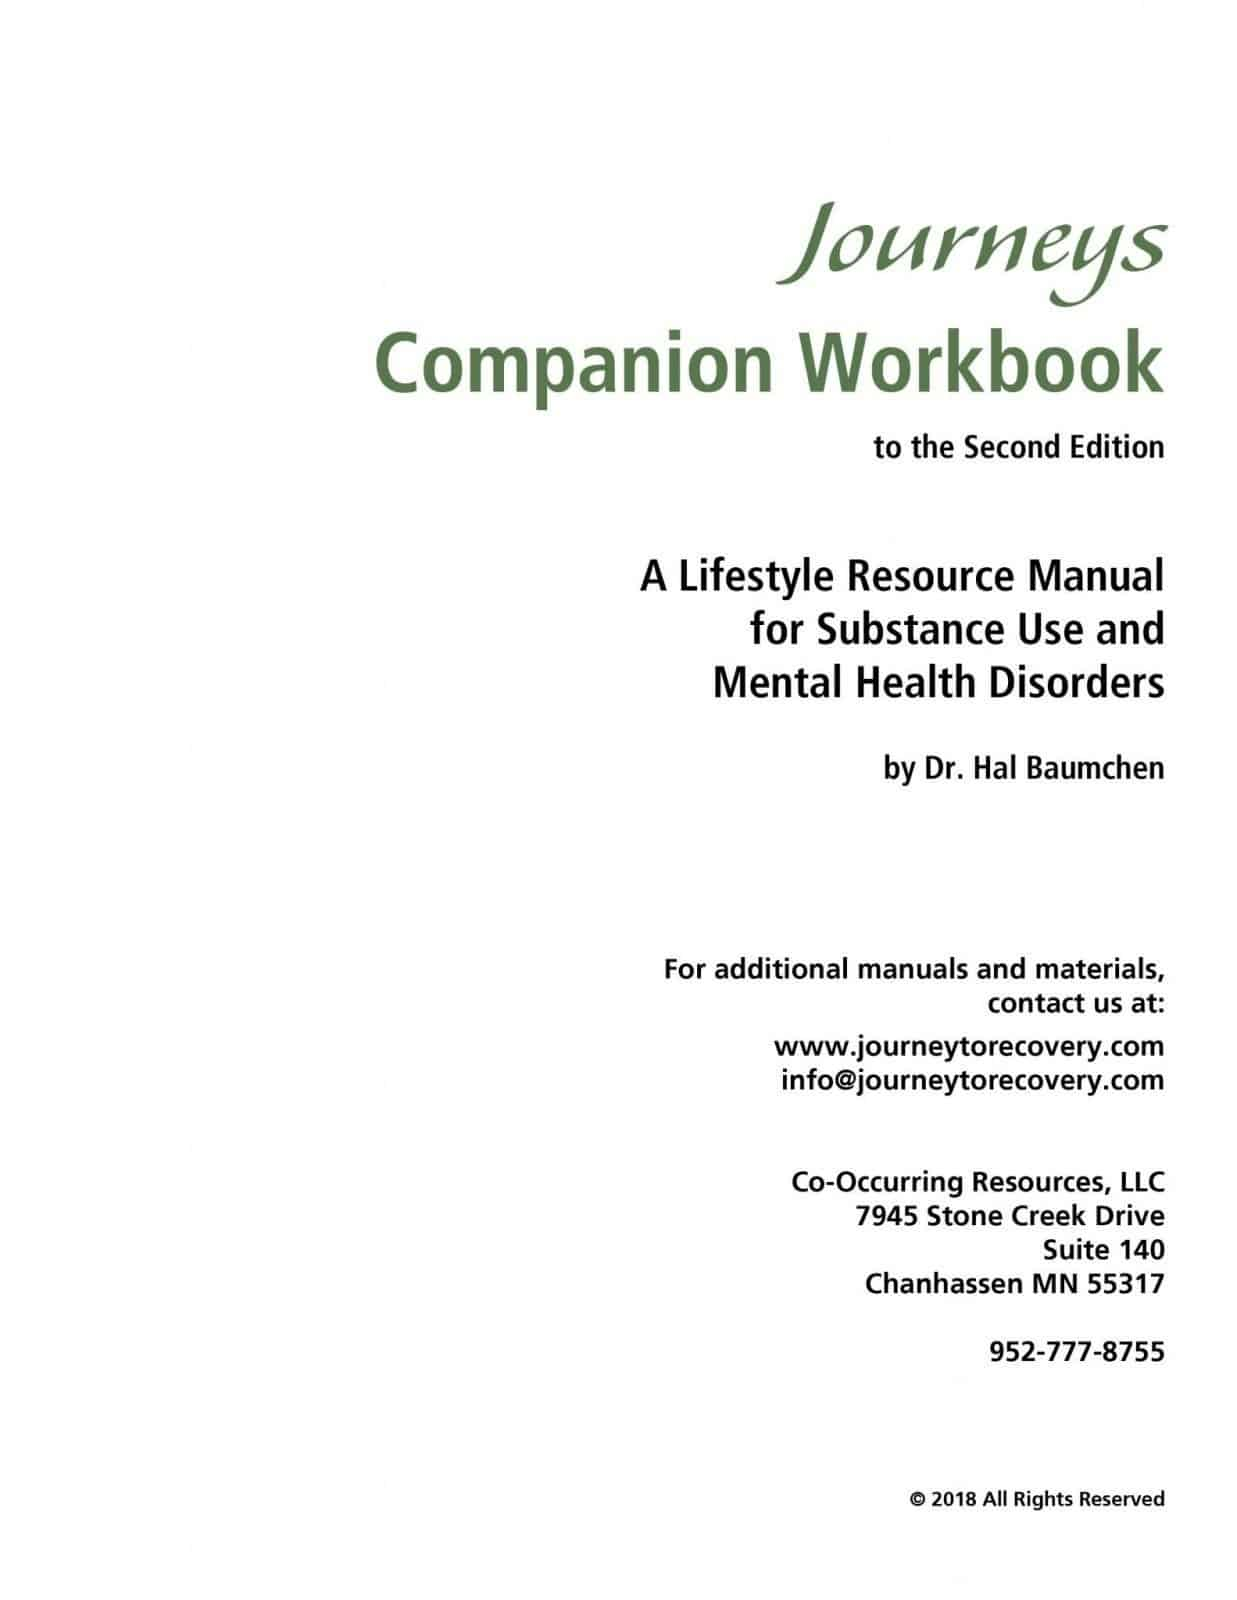 Journeys Companion Workbook